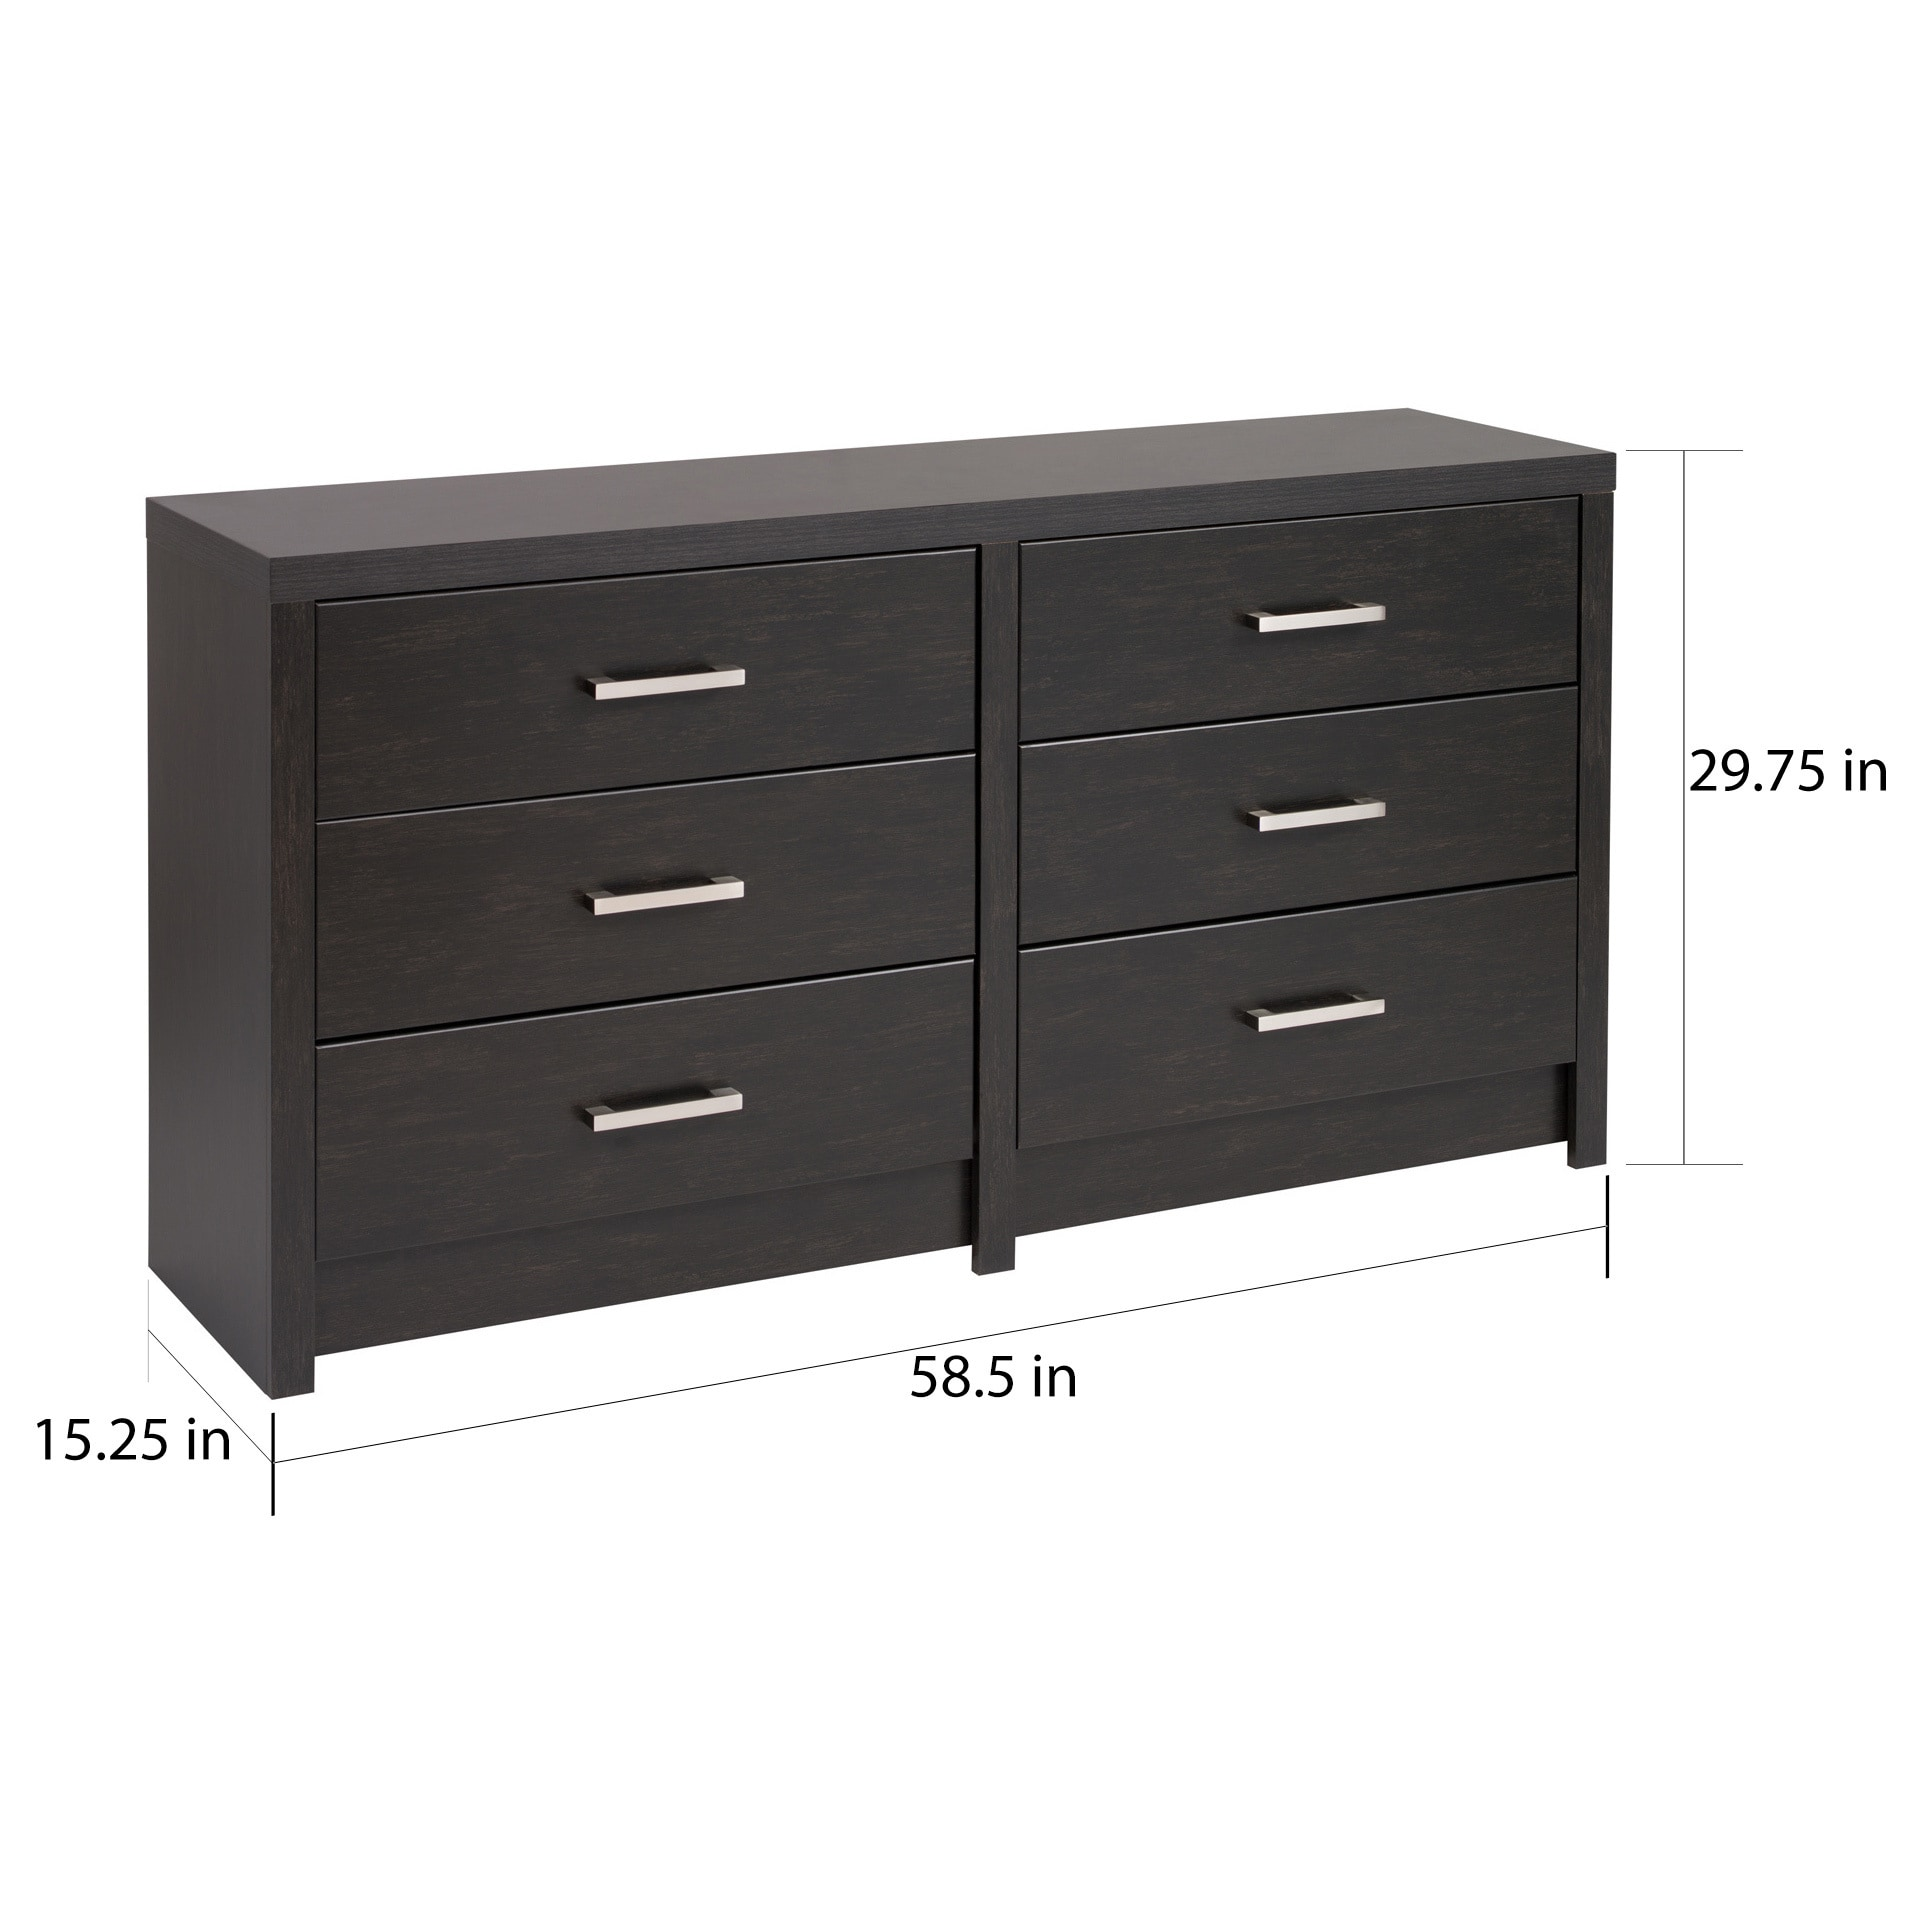 off black dresser hemnes ikea storage